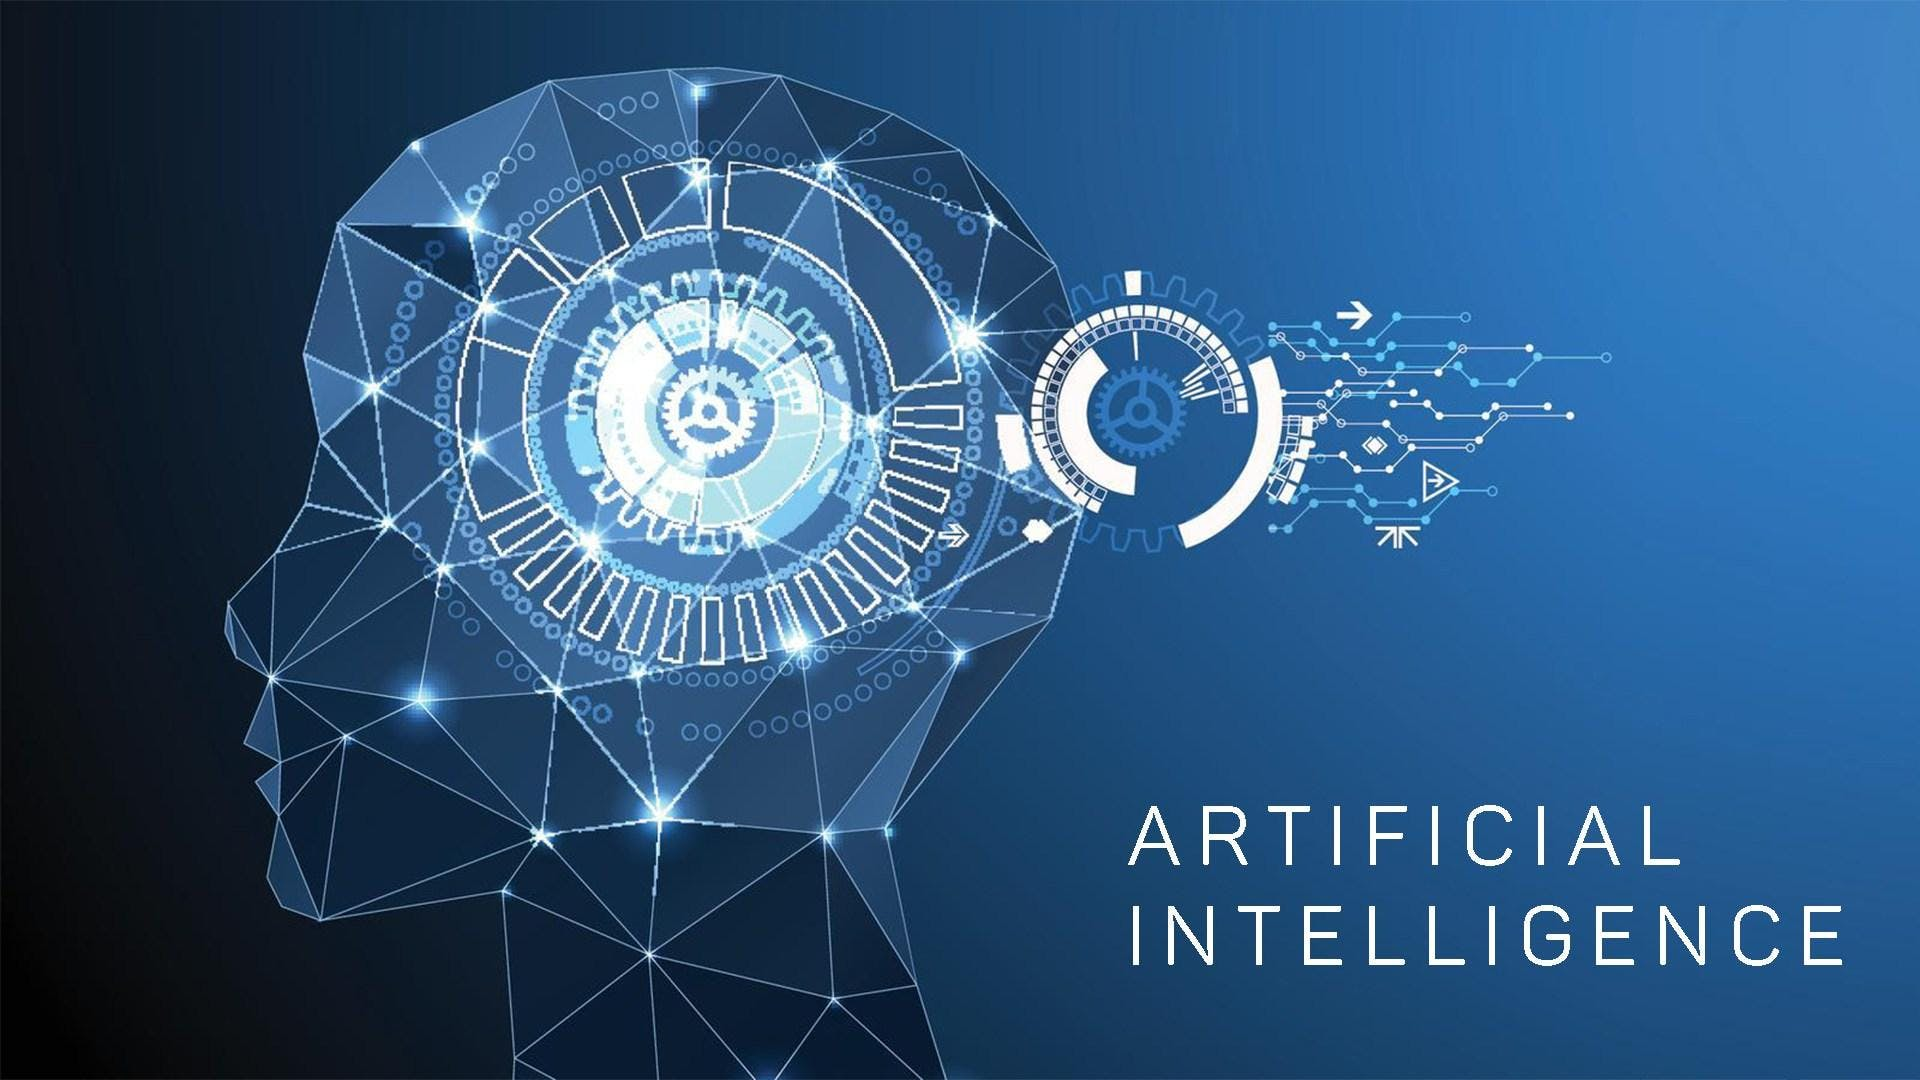 Develop a Successful Artificial Intelligence Tech Entrepreneur Startup Business Today! - Zürich - AI - Entrepreneur - Workshop - Hackathon - Bootcamp - Virtual Class - Seminar - Training - Lecture - Webinar - Conference - Course